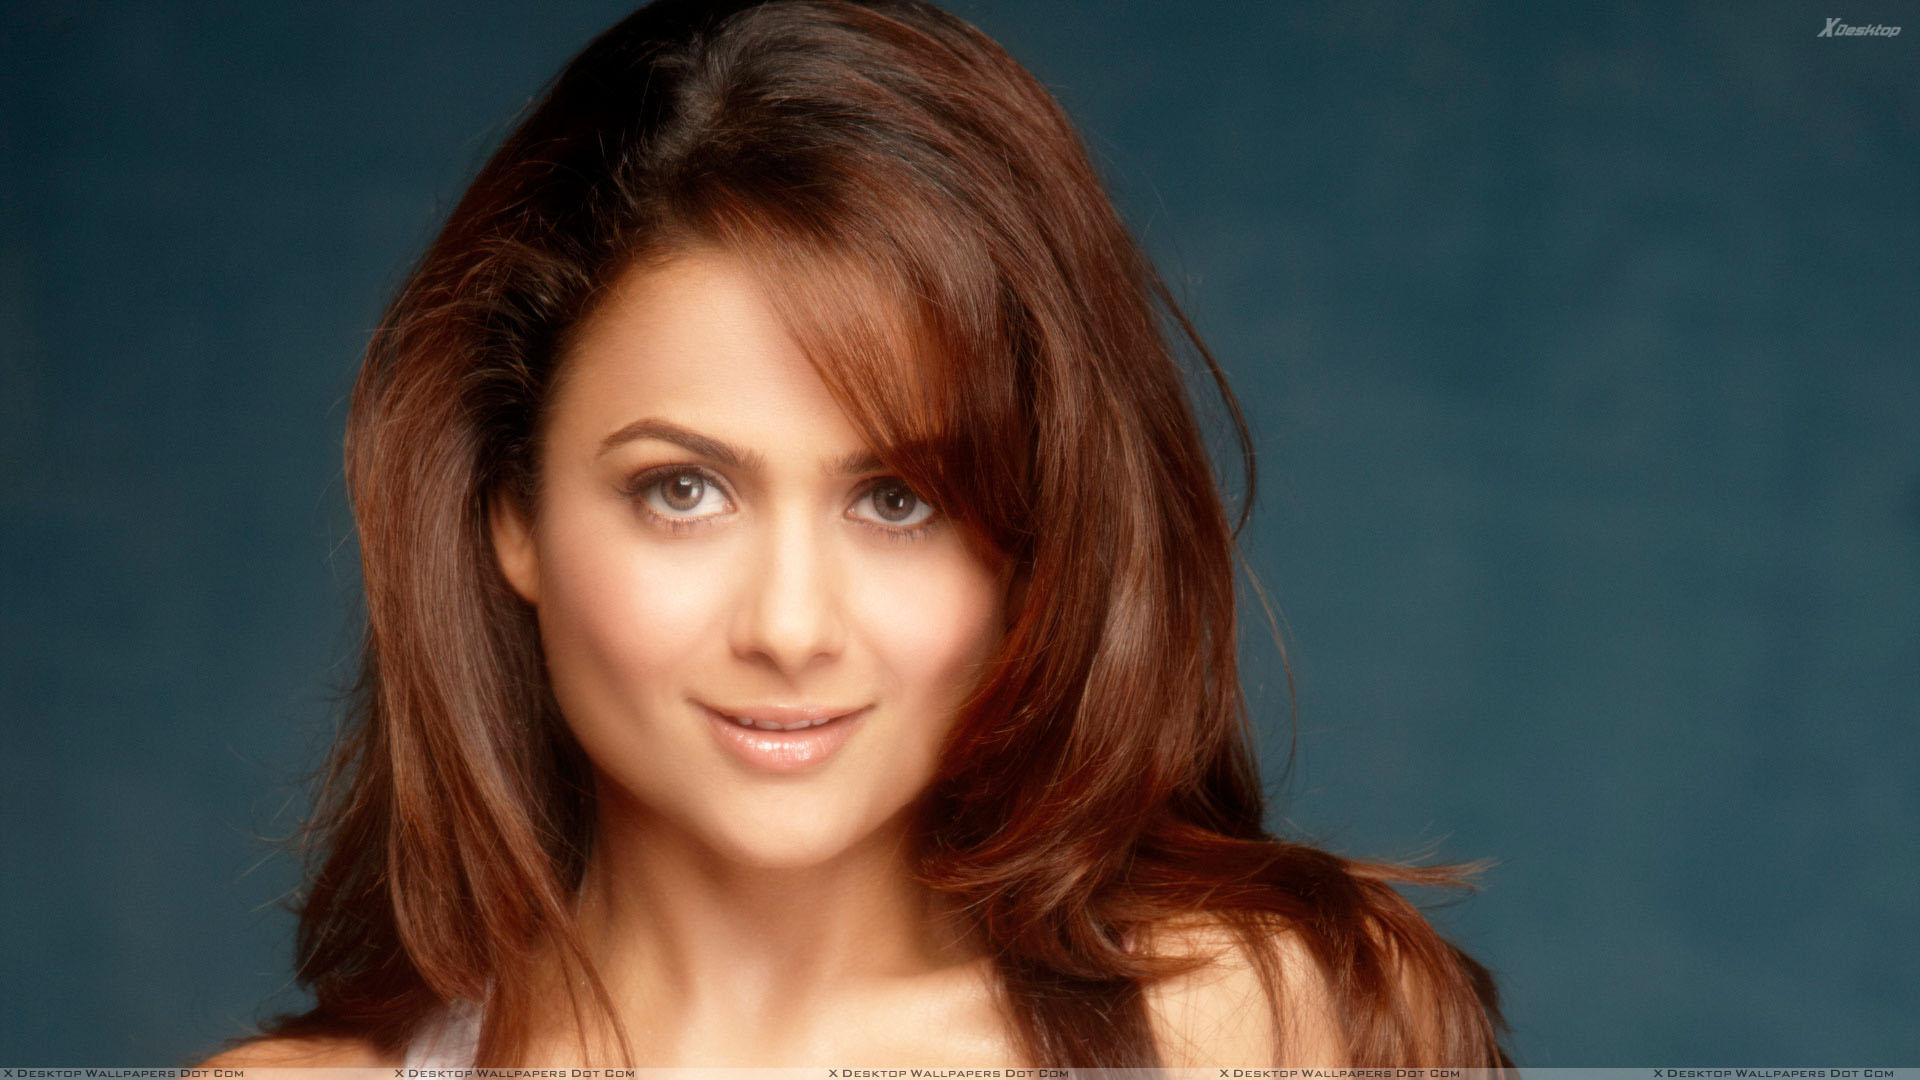 amrita arora wallpapers, photos & images in hd